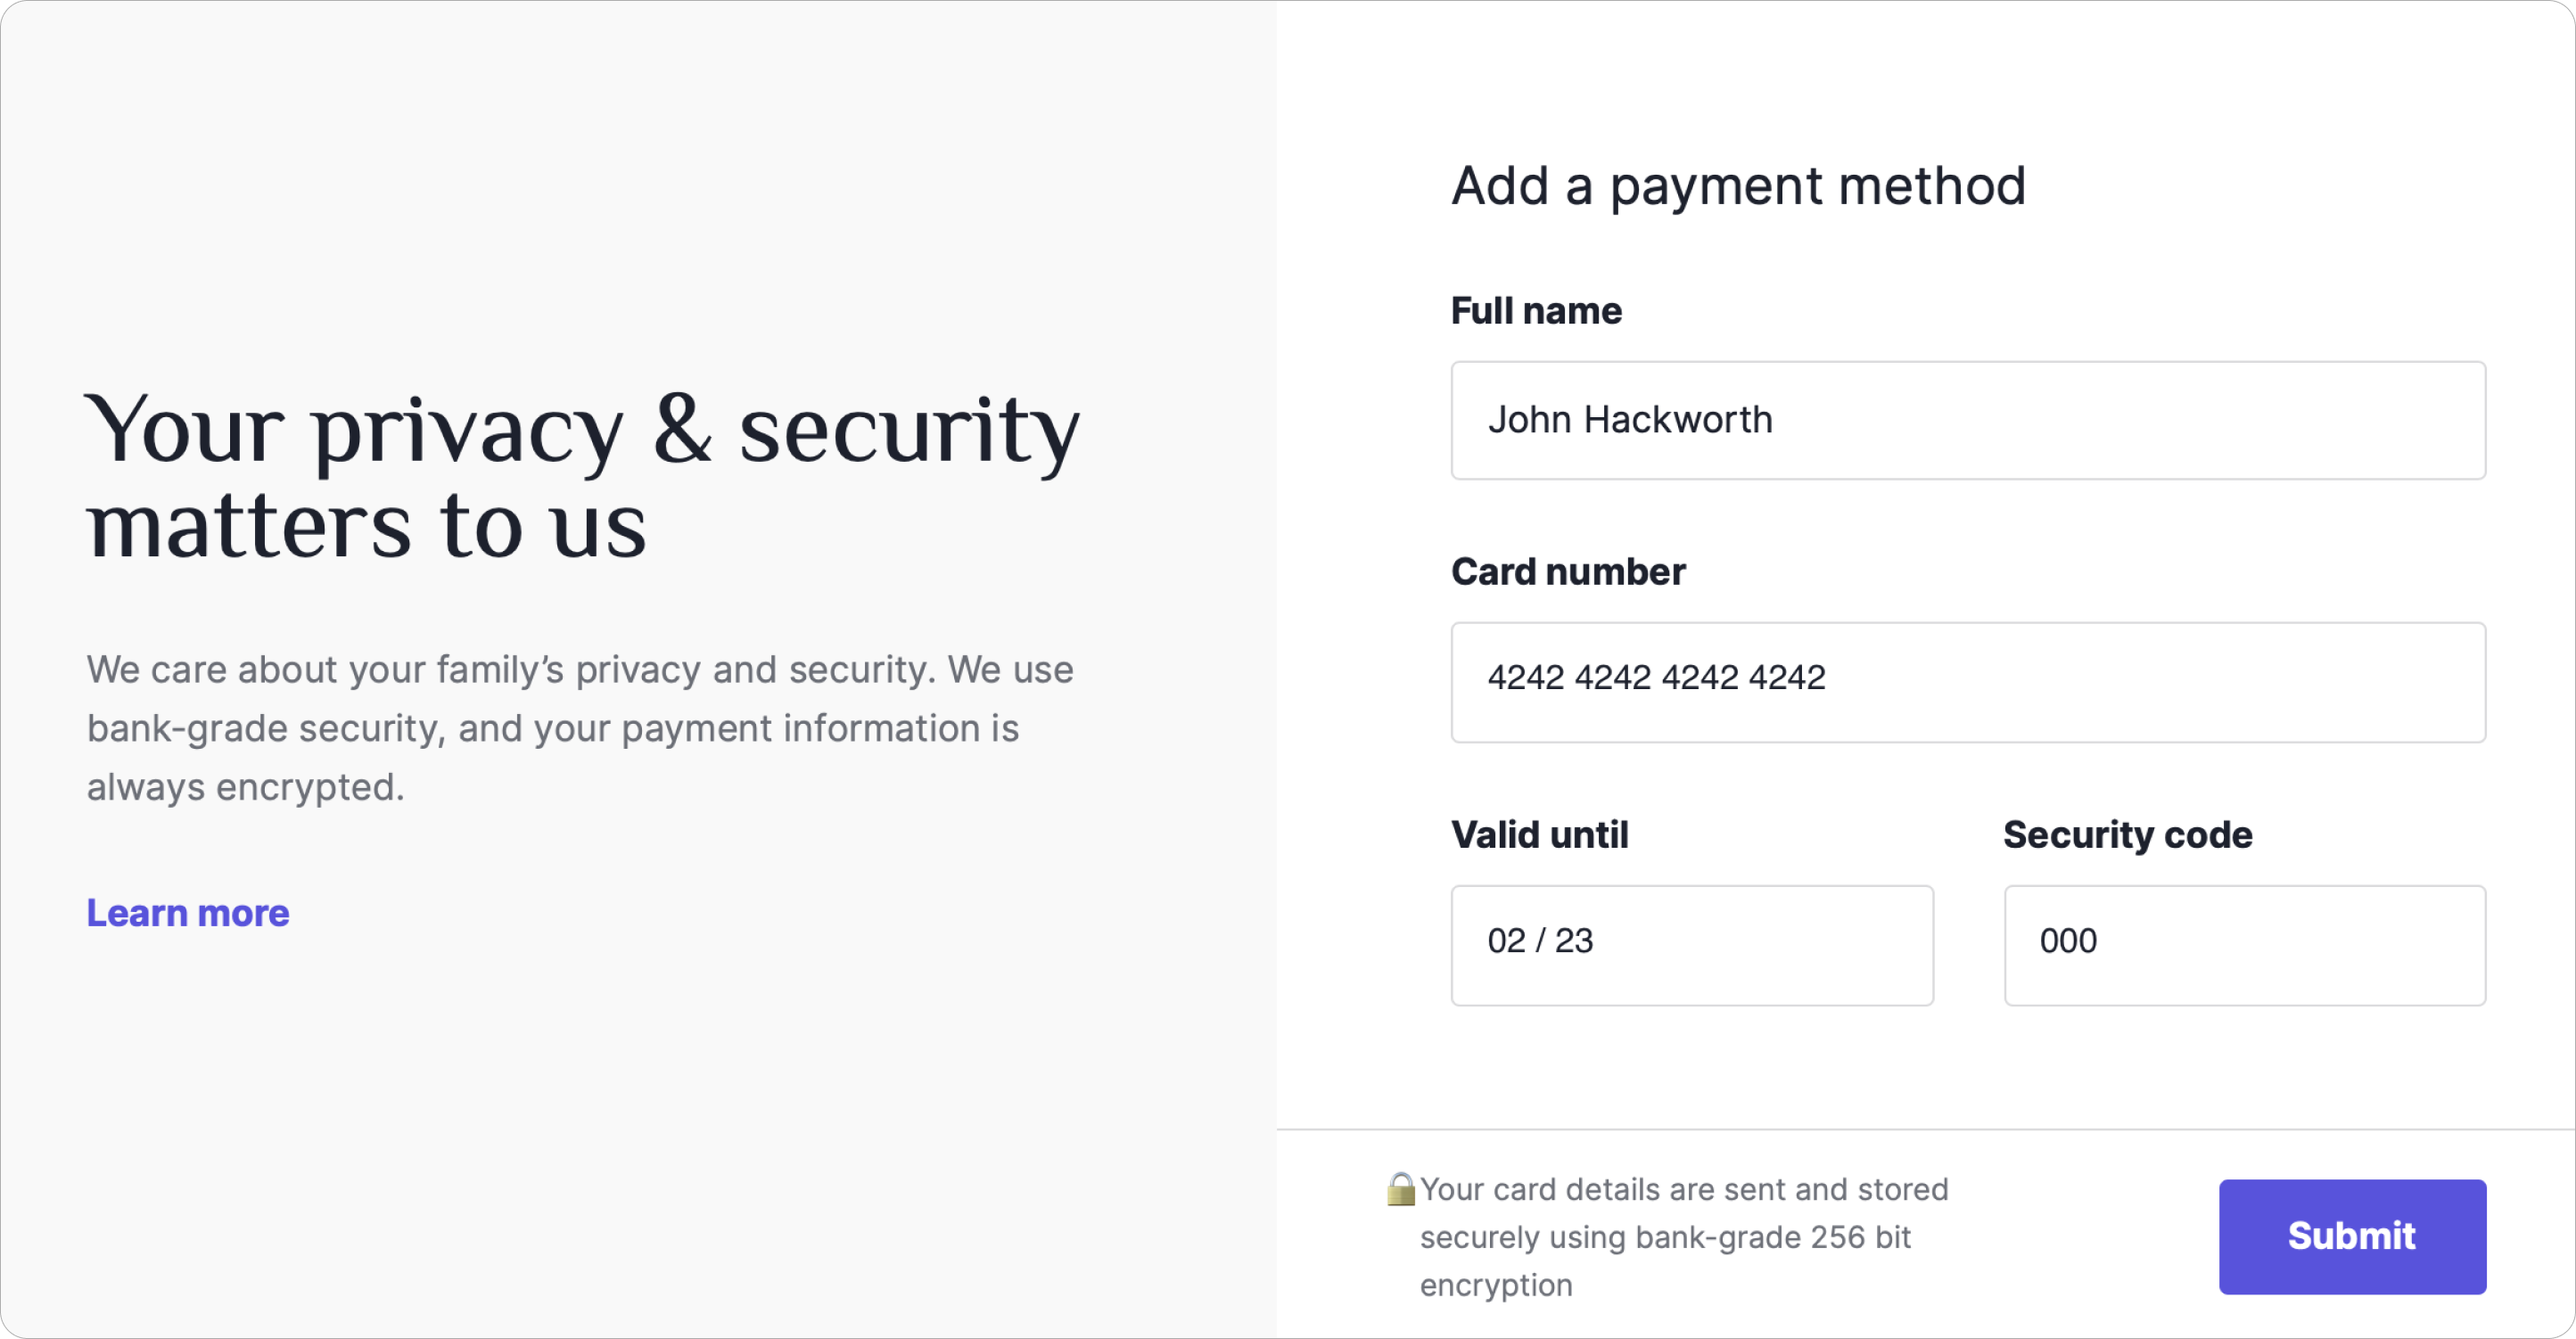 Payment Information Submission